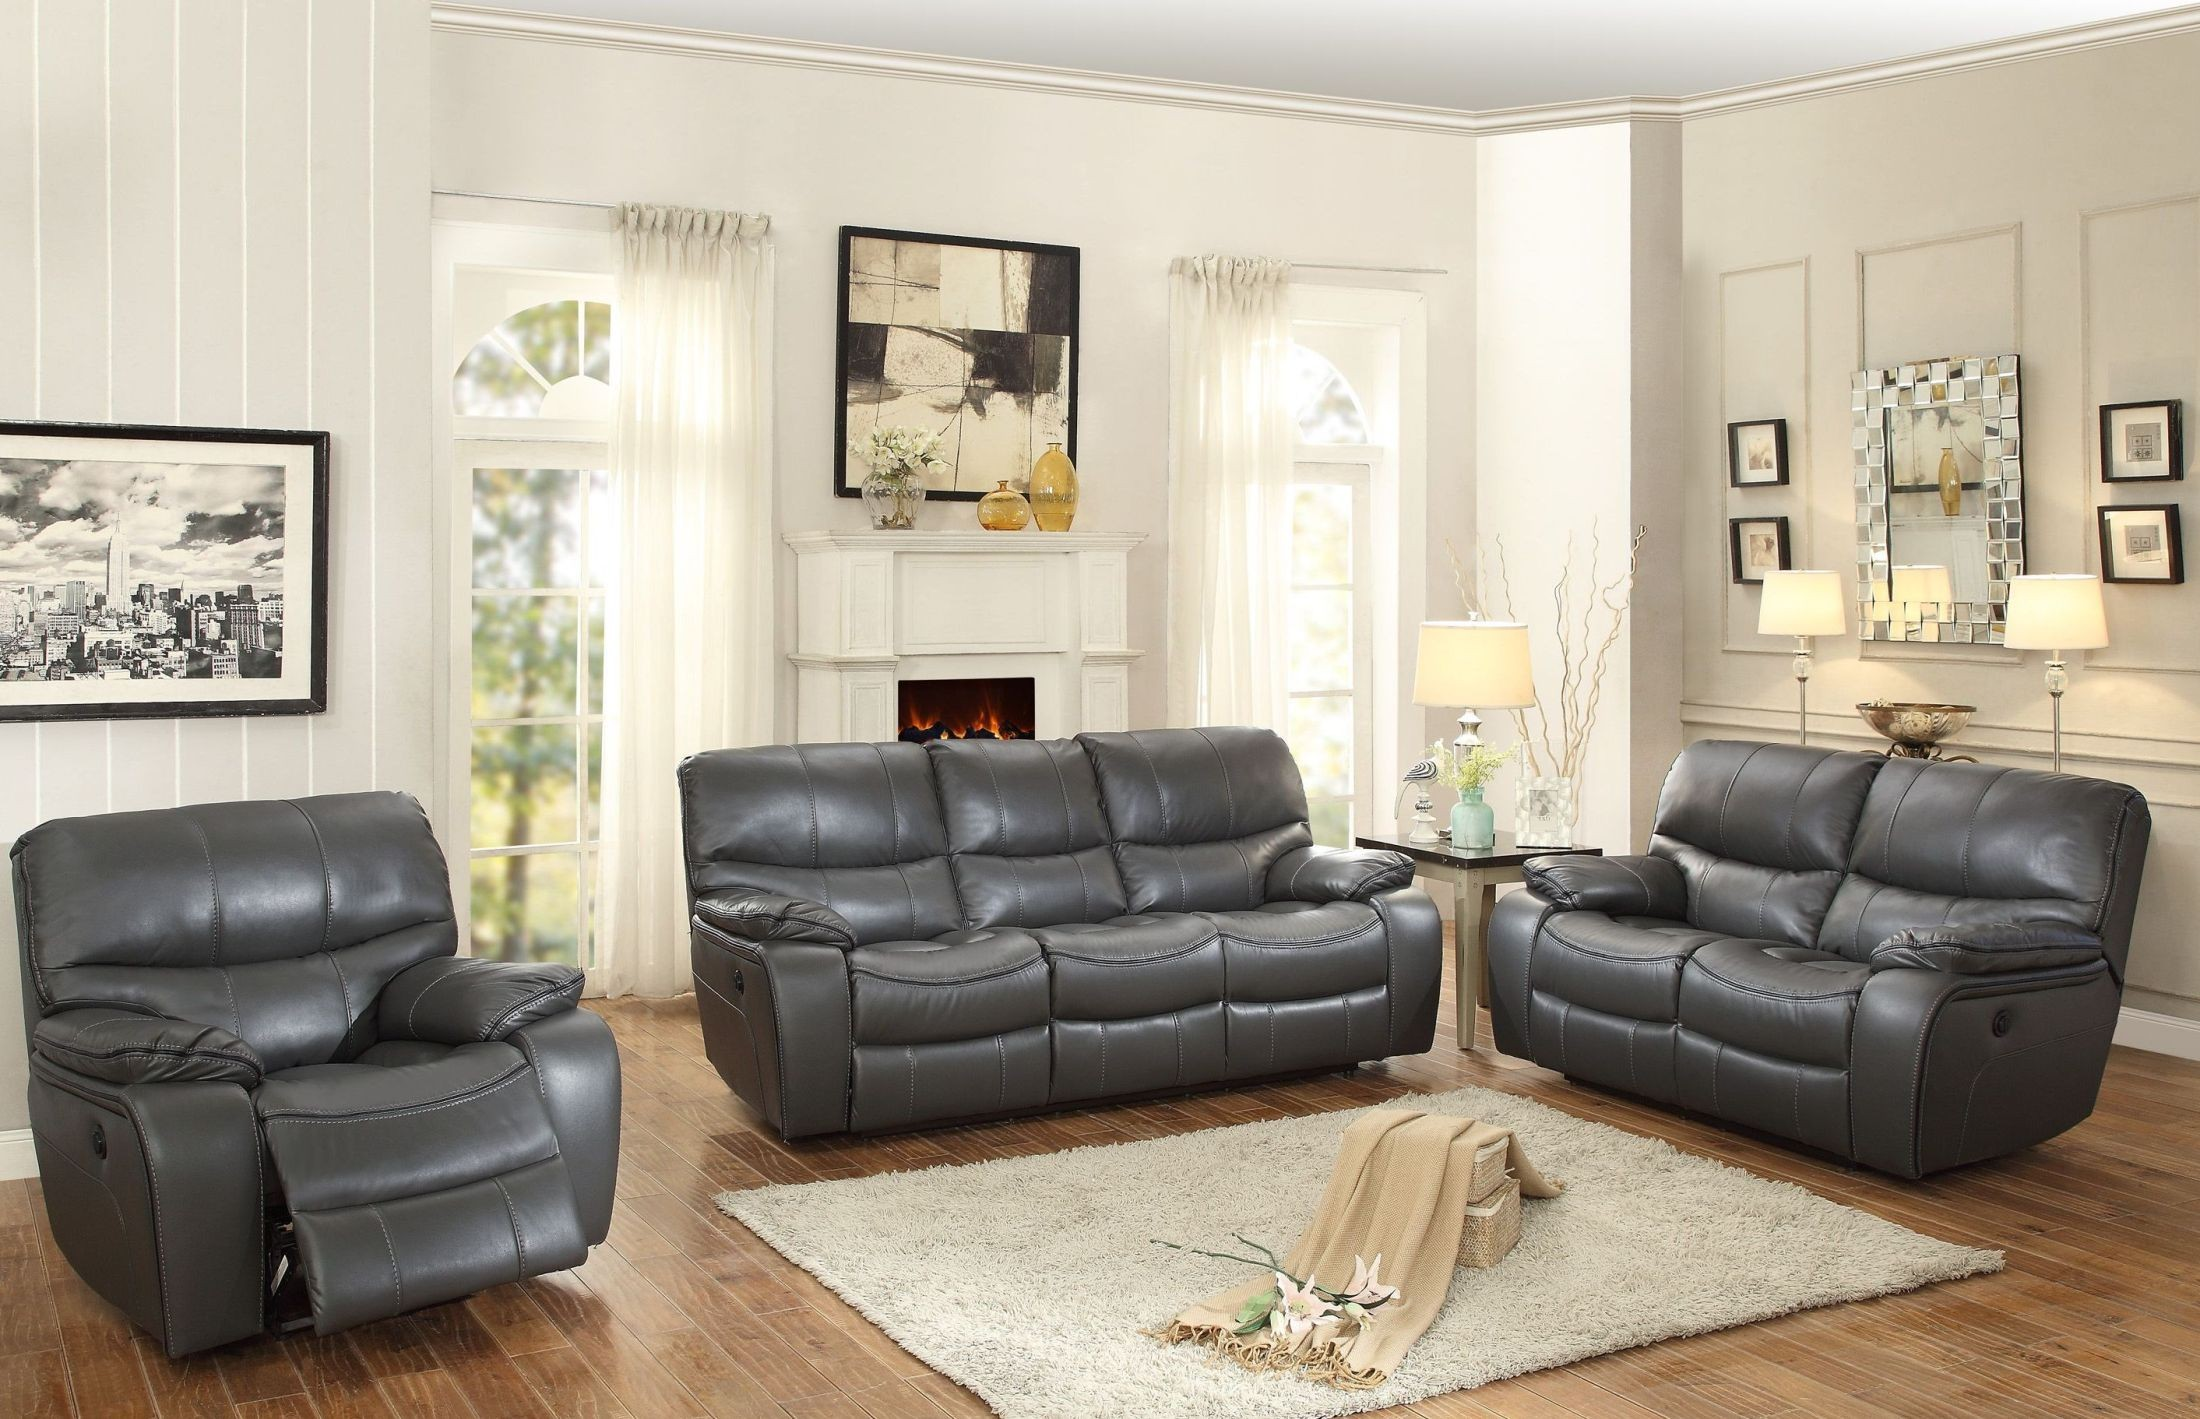 pecos gray double reclining living room set from homelegance coleman furniture. Black Bedroom Furniture Sets. Home Design Ideas